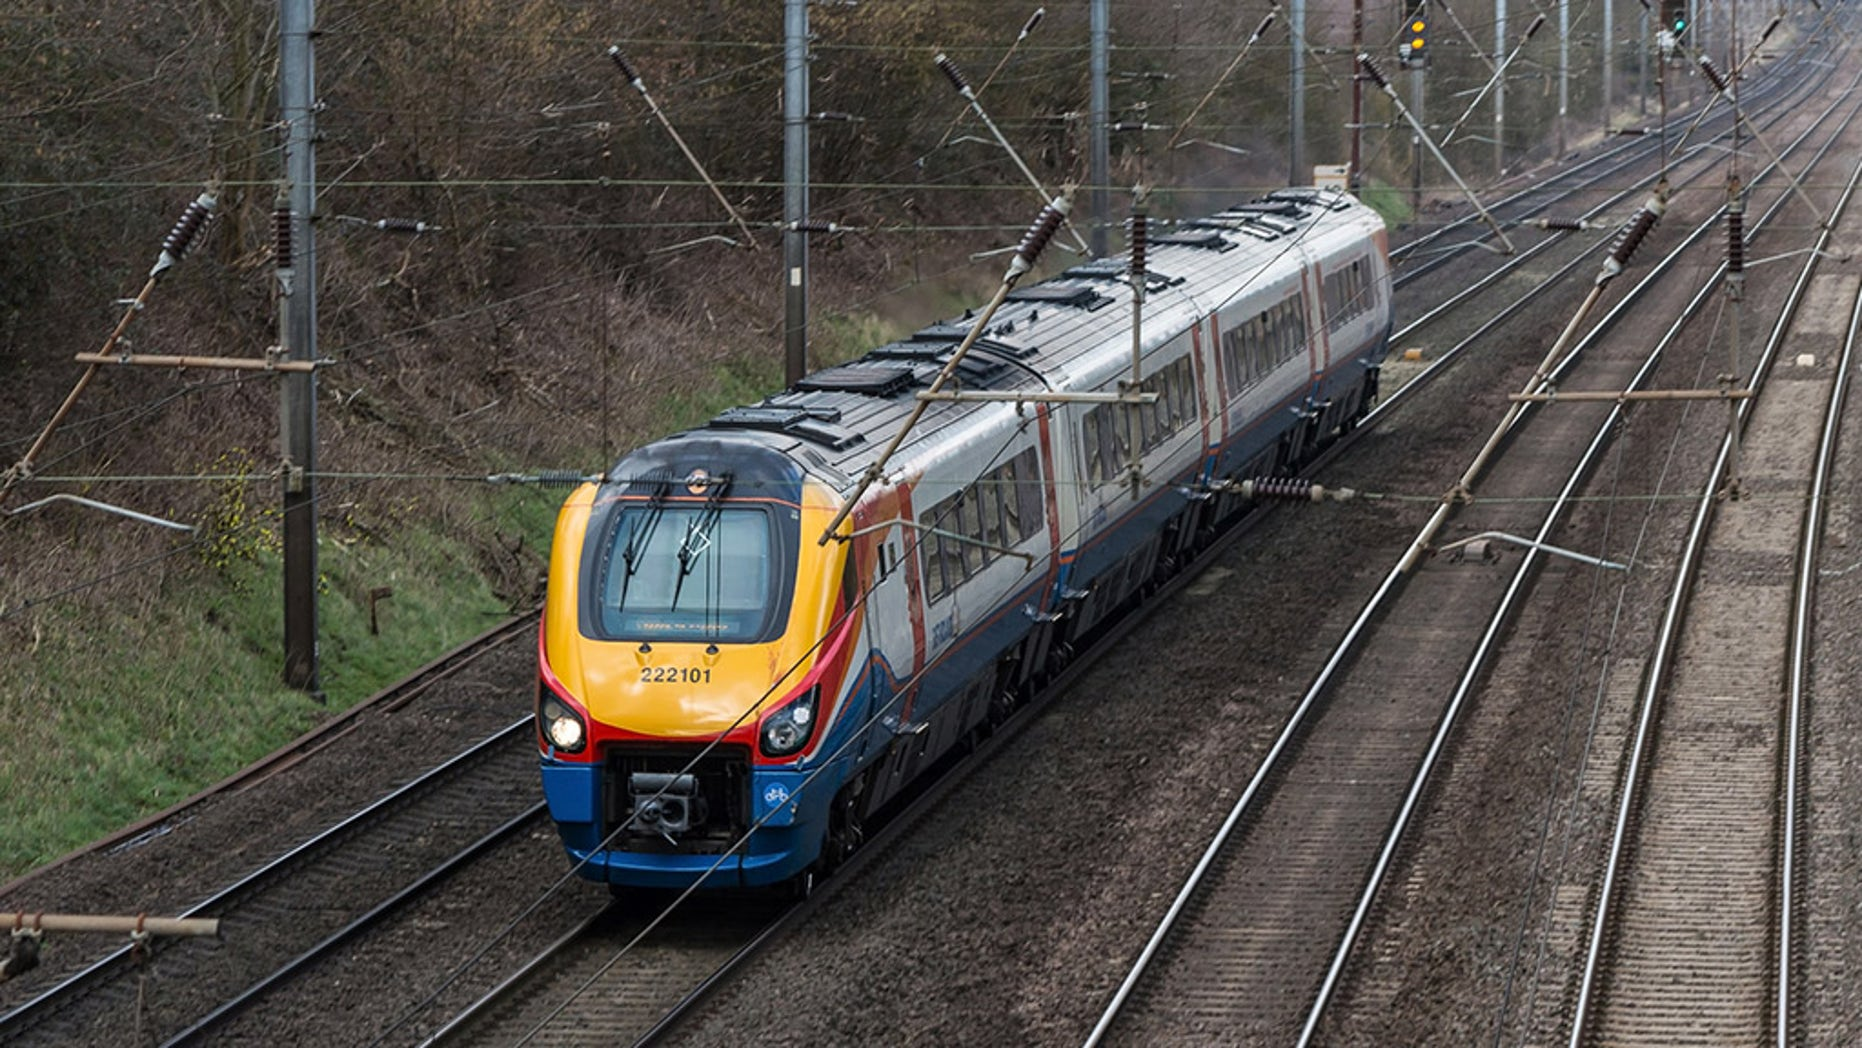 The train was eventually directed to Sheffield where the service was terminated, and passengers then had to catch a different train.